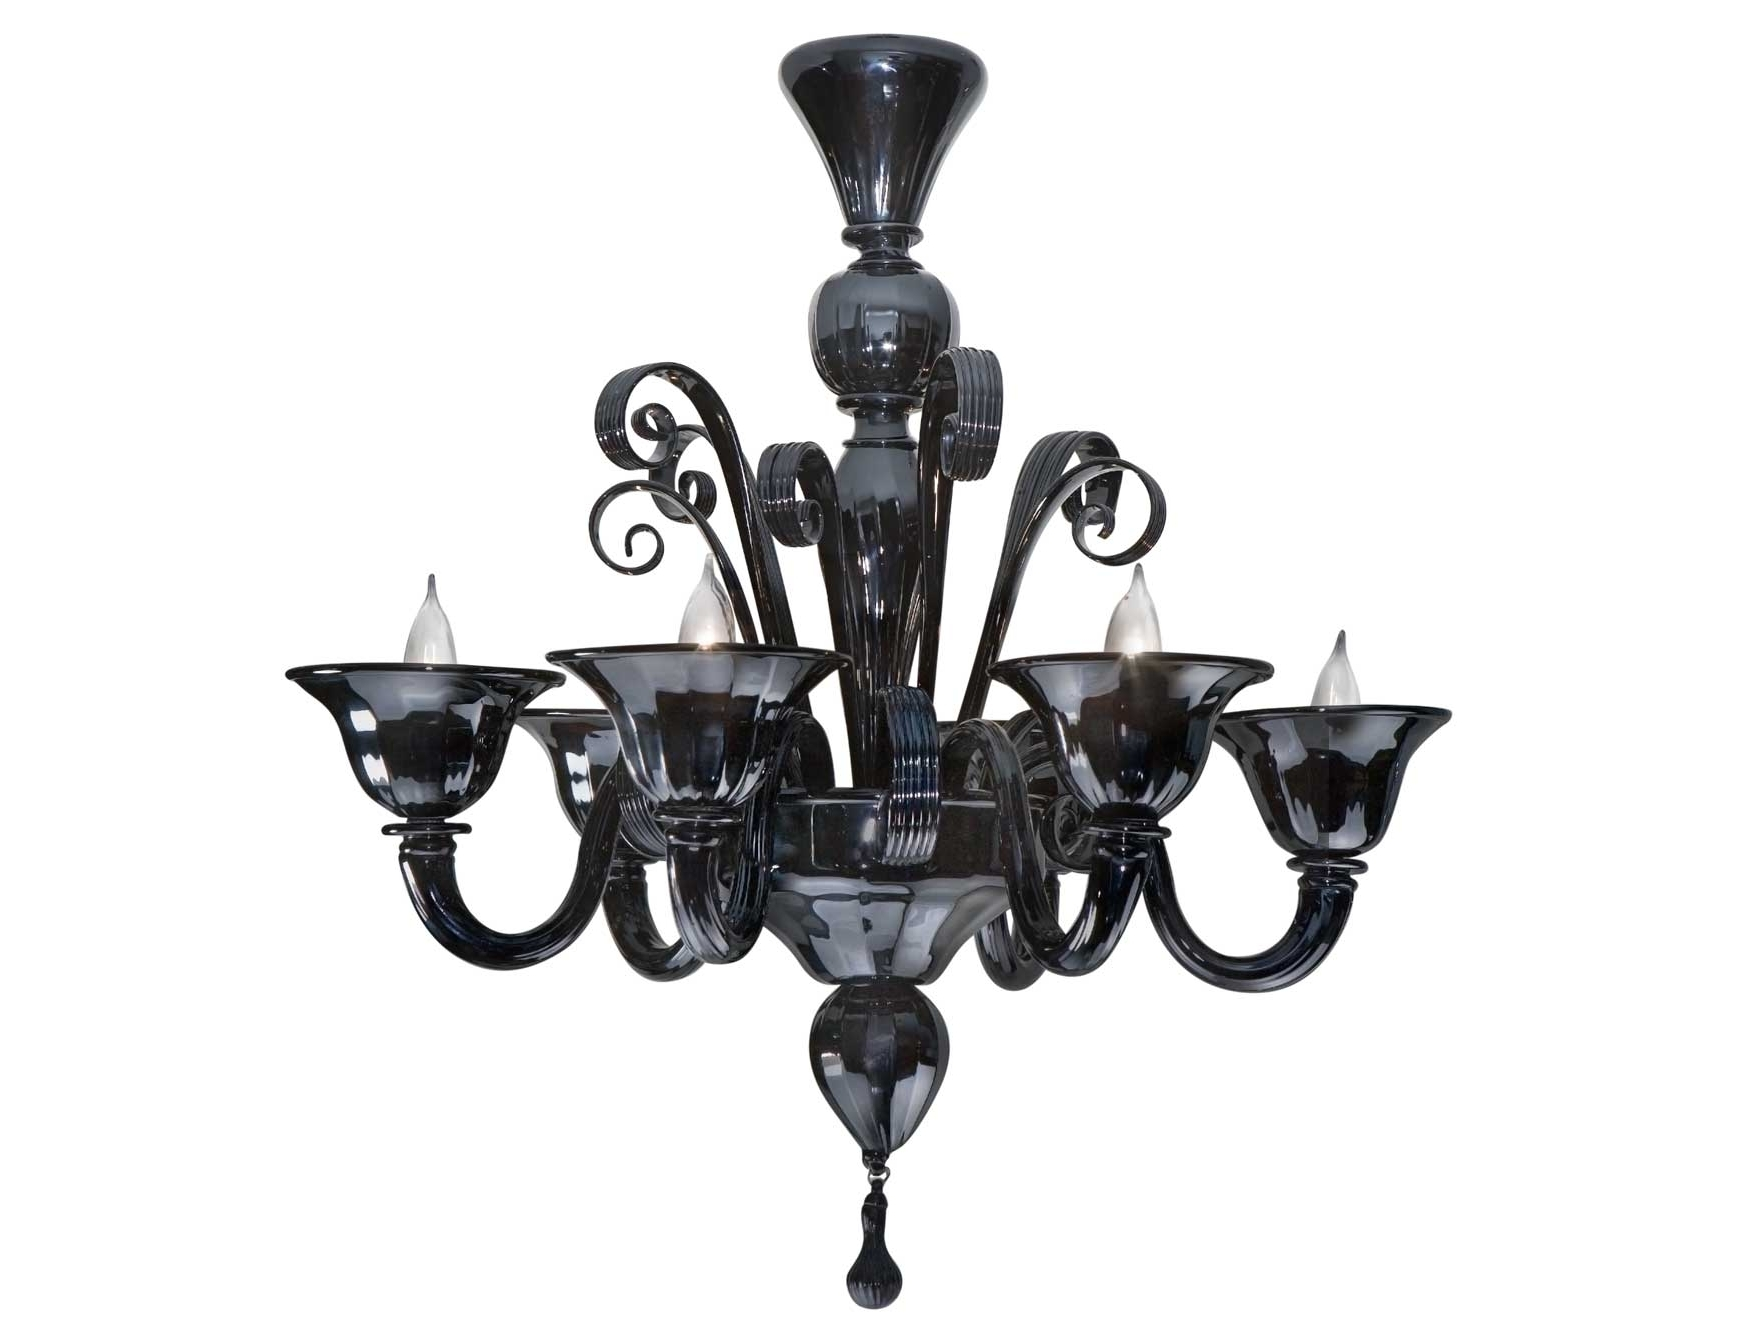 Nella Vetrina Black Murano 6 959/6 Murano Chandelier In Black Intended For Most Recently Released Murano Chandelier (View 17 of 20)